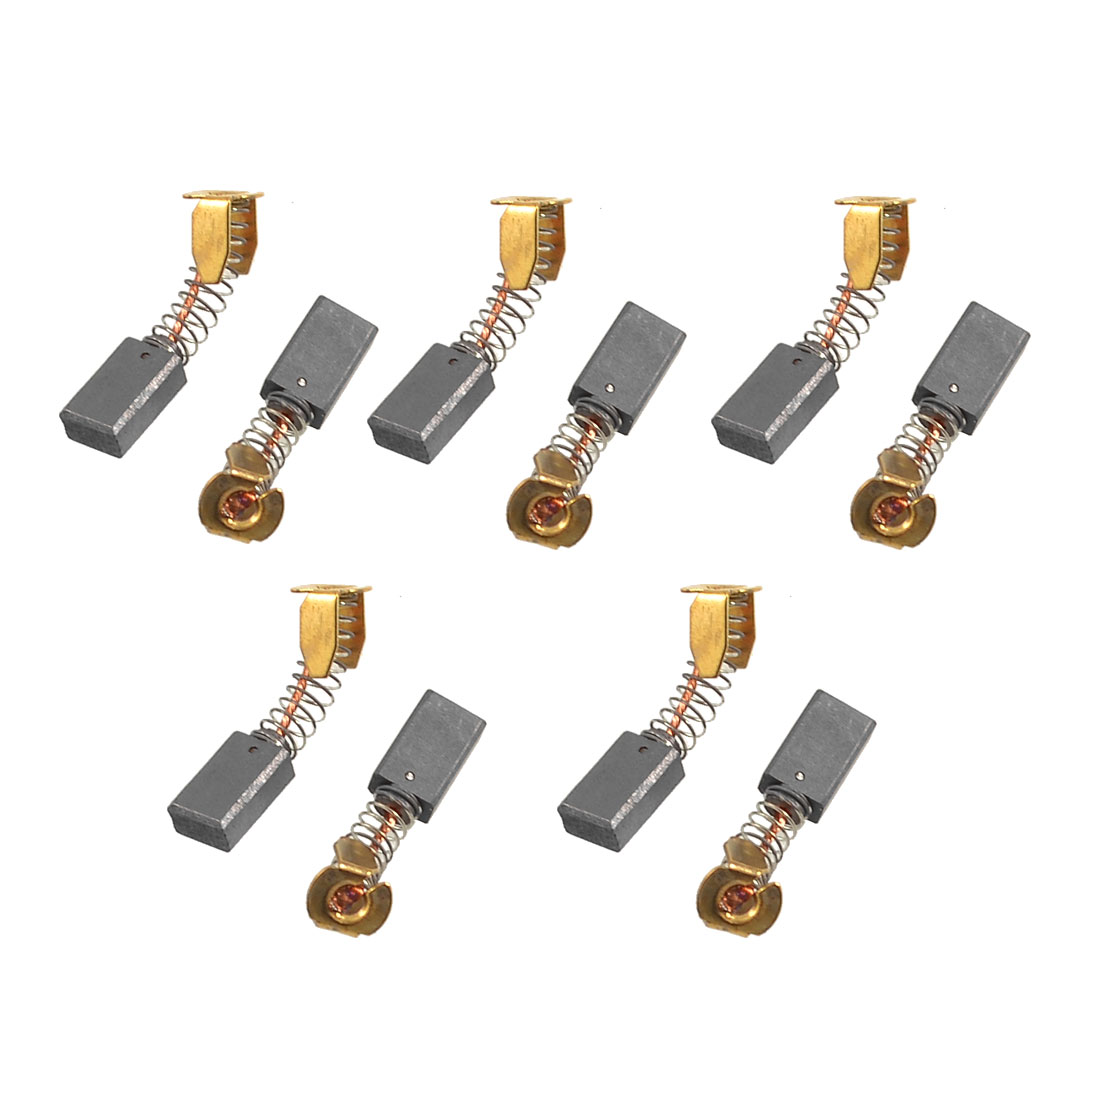 10 Pairs 13mm x 7.8mm x 4.8mm CB51 Motor Carbon Brushes for Hammer Drill